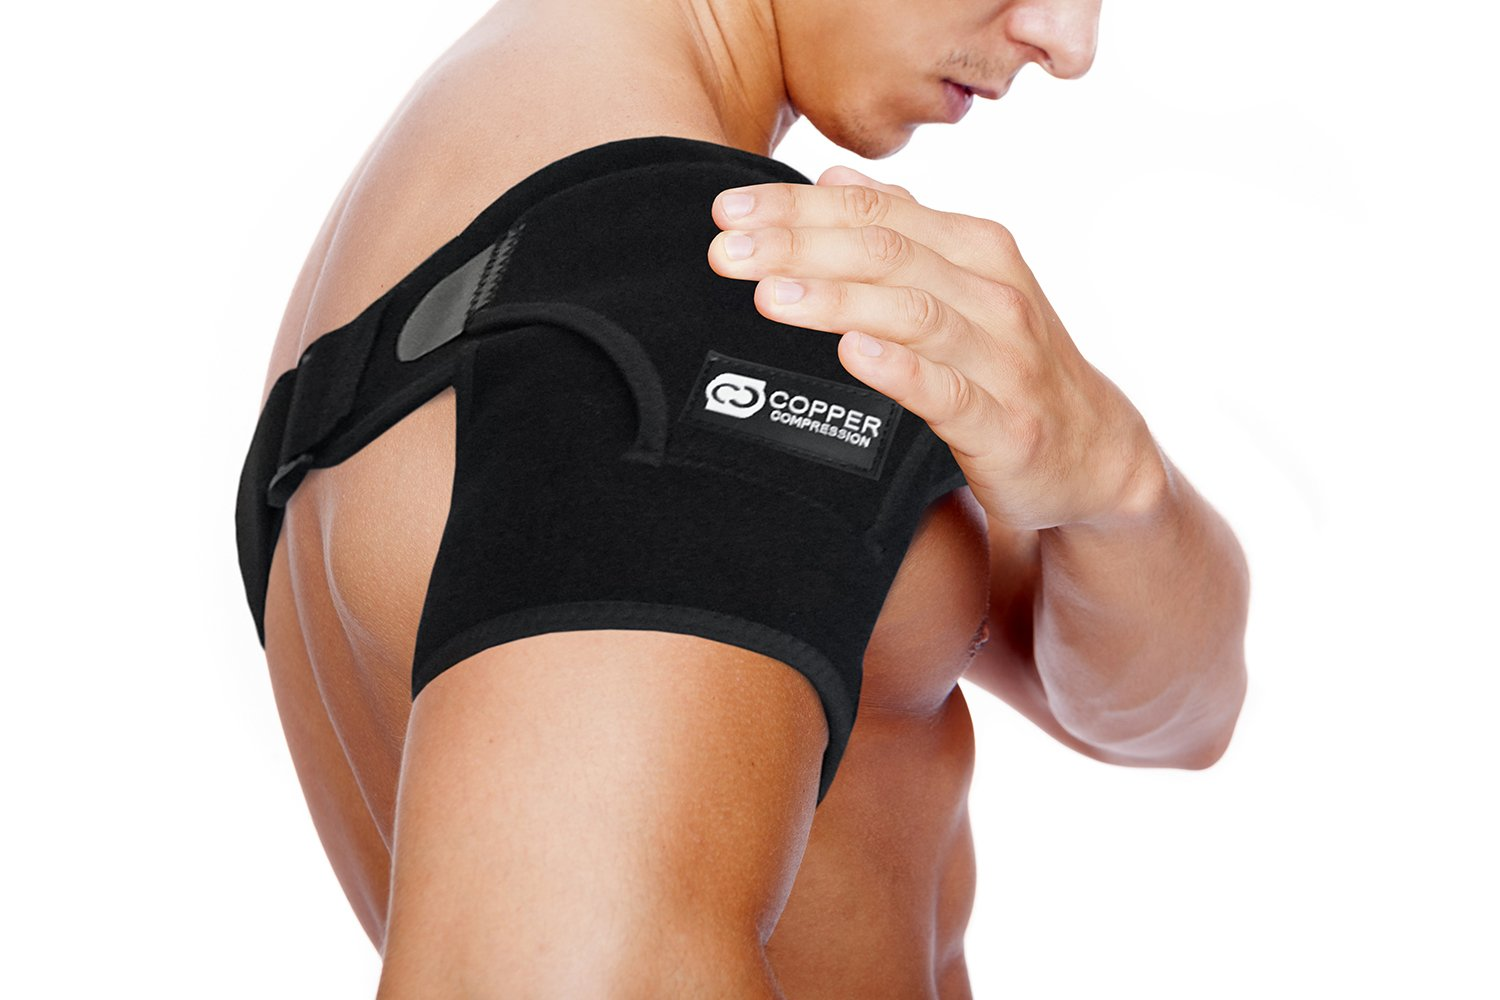 Copper Compression Recovery Shoulder Brace - Highest Copper Content Shoulder Stability Support Brace. Adjustable Fit Sleeve Wrap Men Women. Relief for Shoulder Injuries, Tendonitis (One Size Regular) by Copper Compression